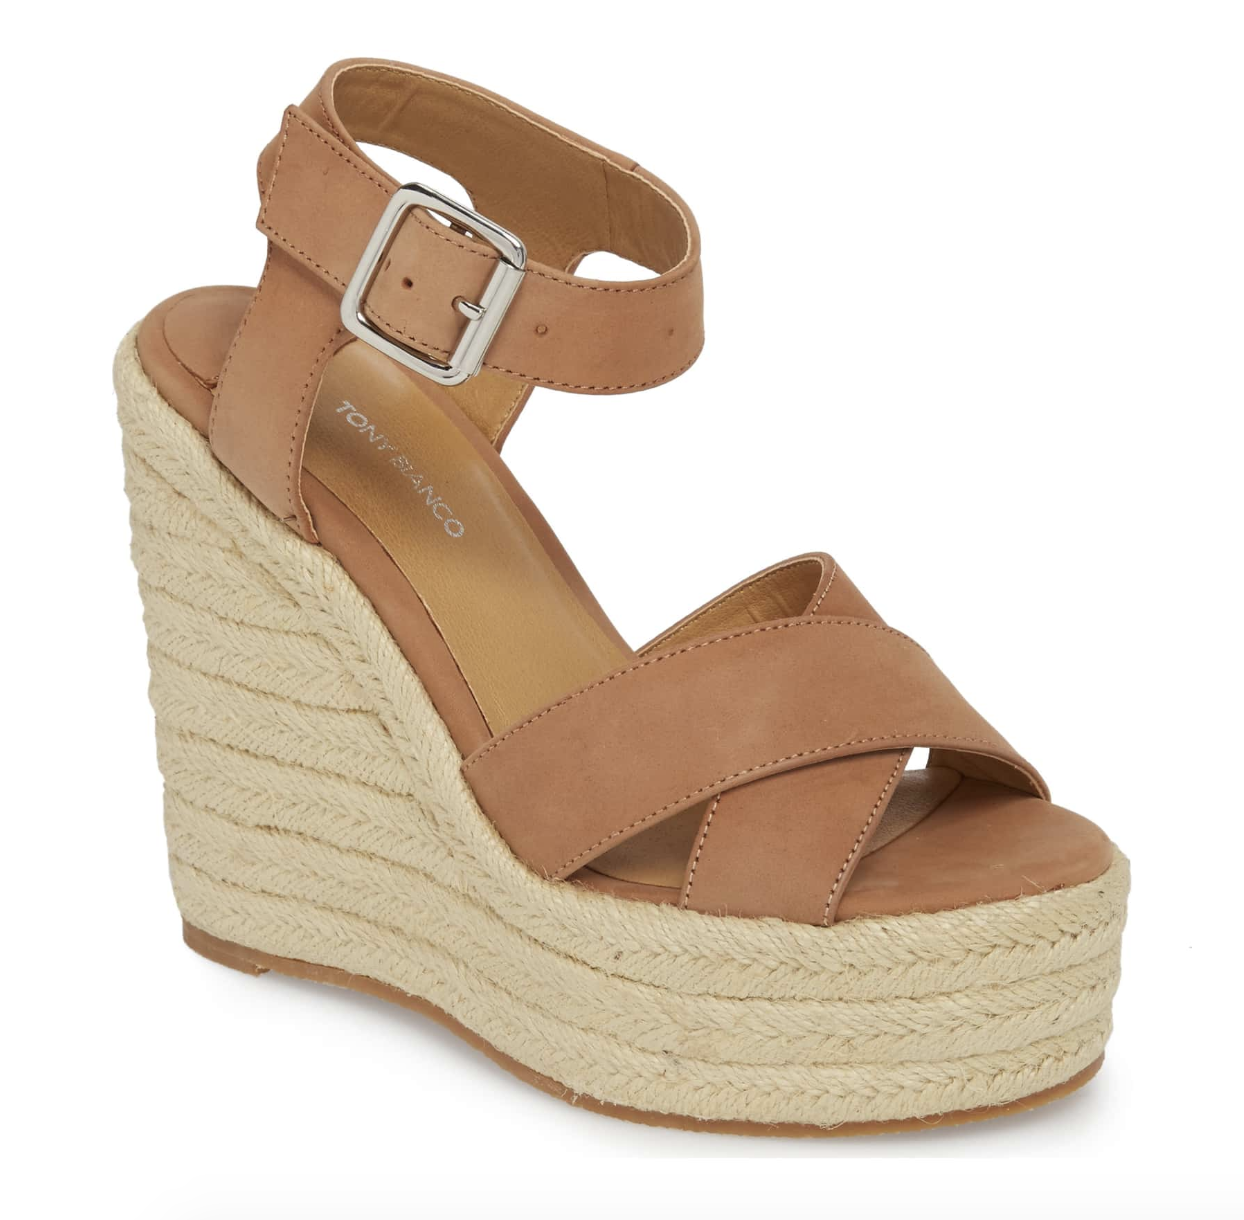 Tony Bianco wedge